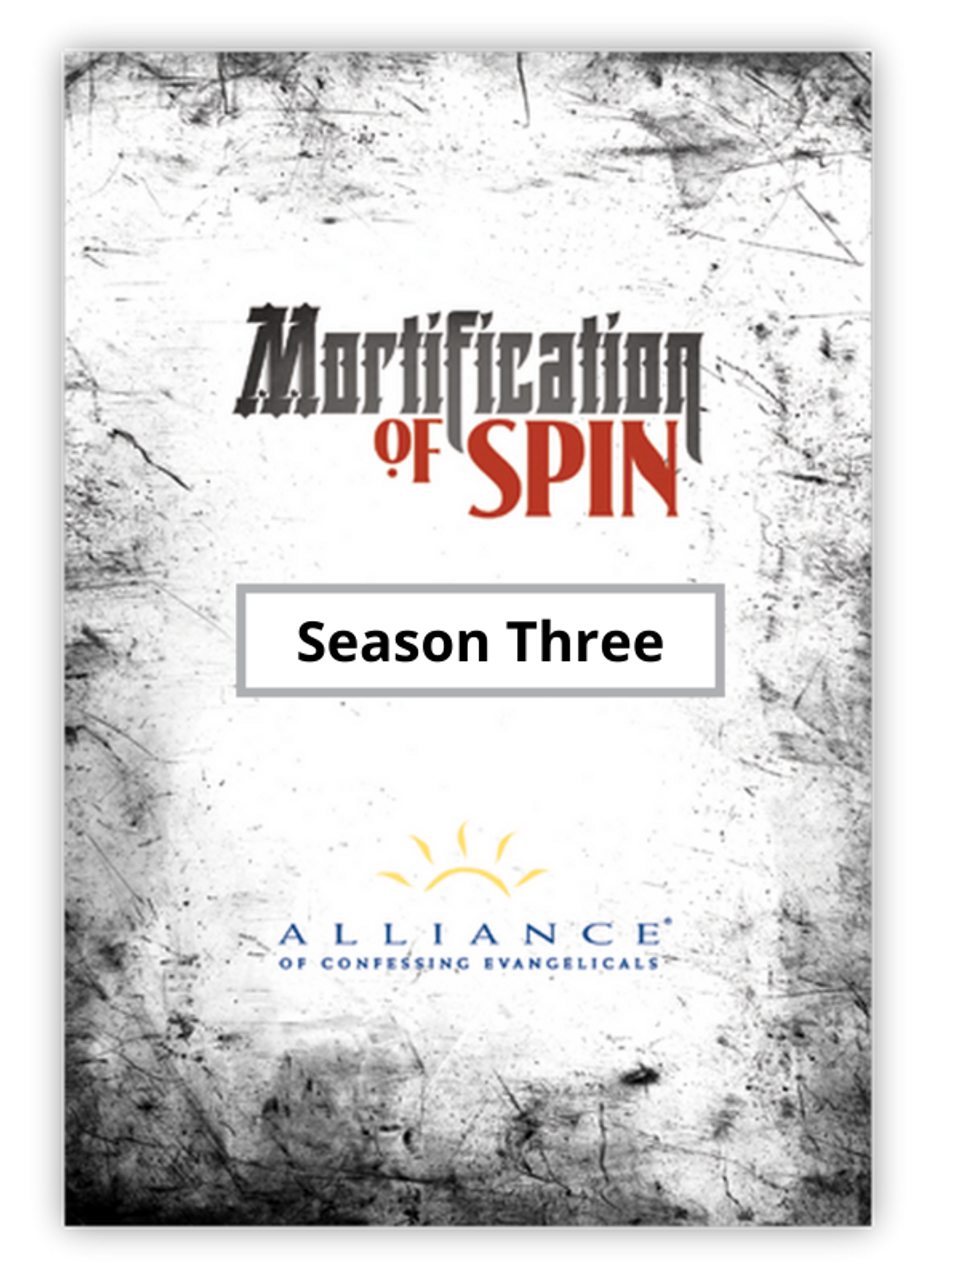 Mortification of Spin 3rd Season (mp3 Disc)